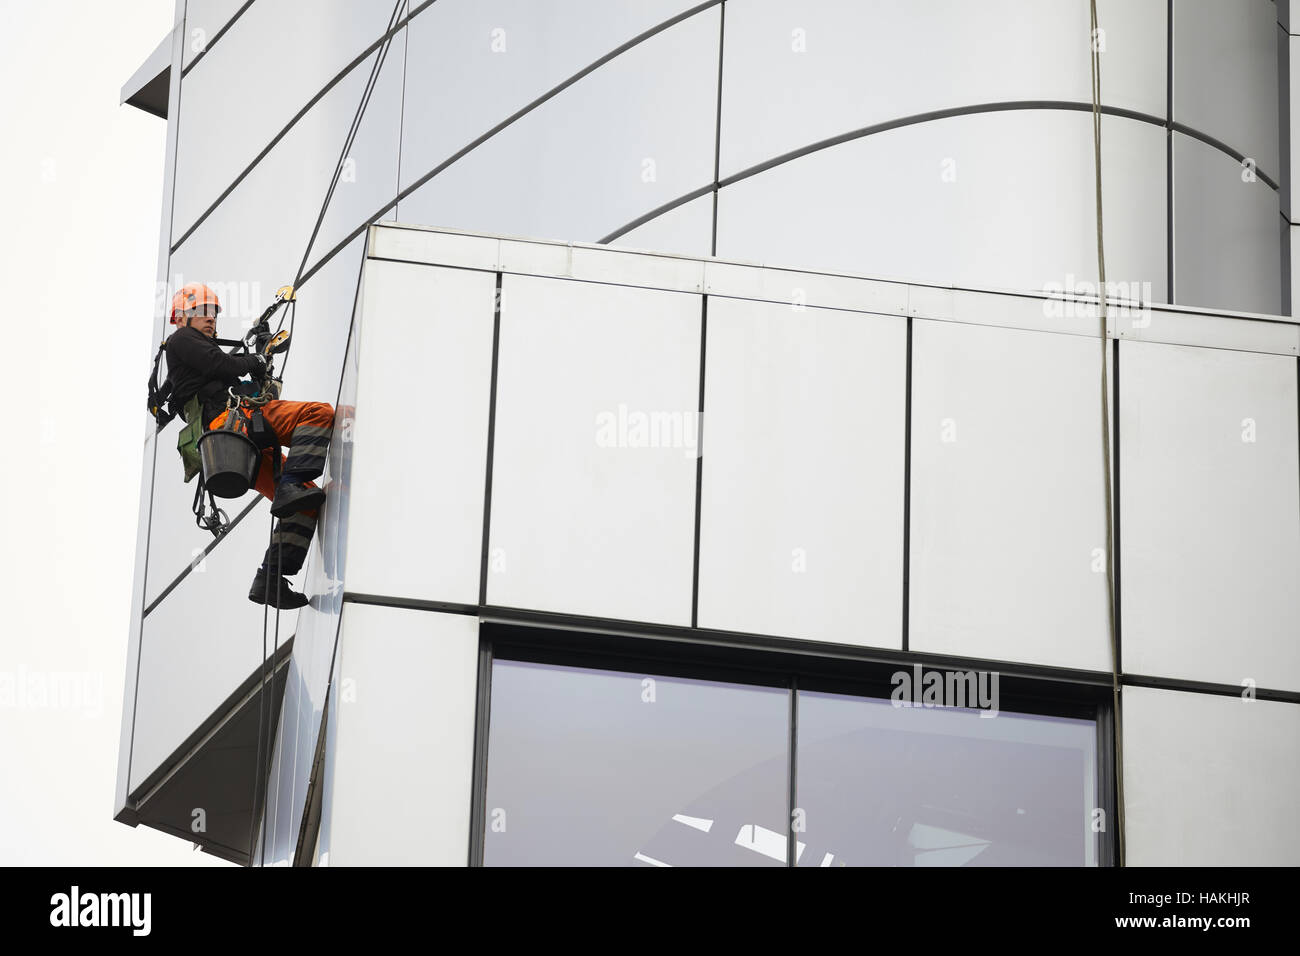 Abseiling Window Cleaner Manchester Office Architect Property Properties  Building Development Structure Property Architectural Design Stunning Uniqu